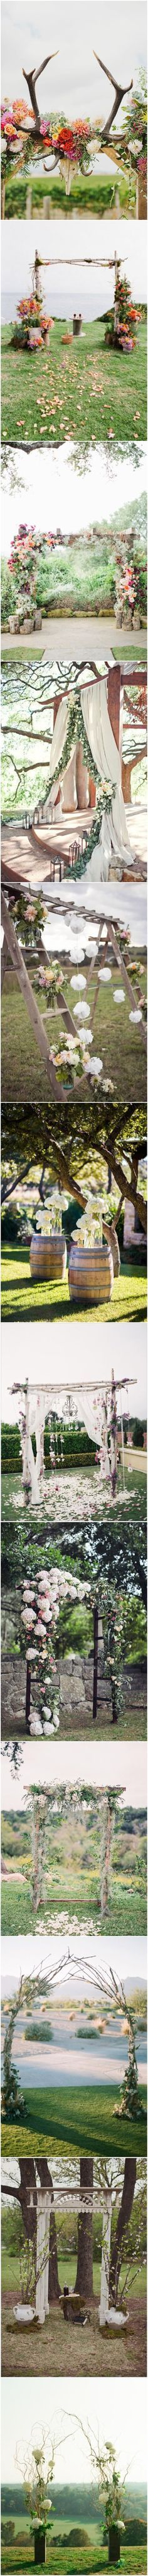 Rustic Wedding Ideas - Floral Wedding Arches Decorating Ideas